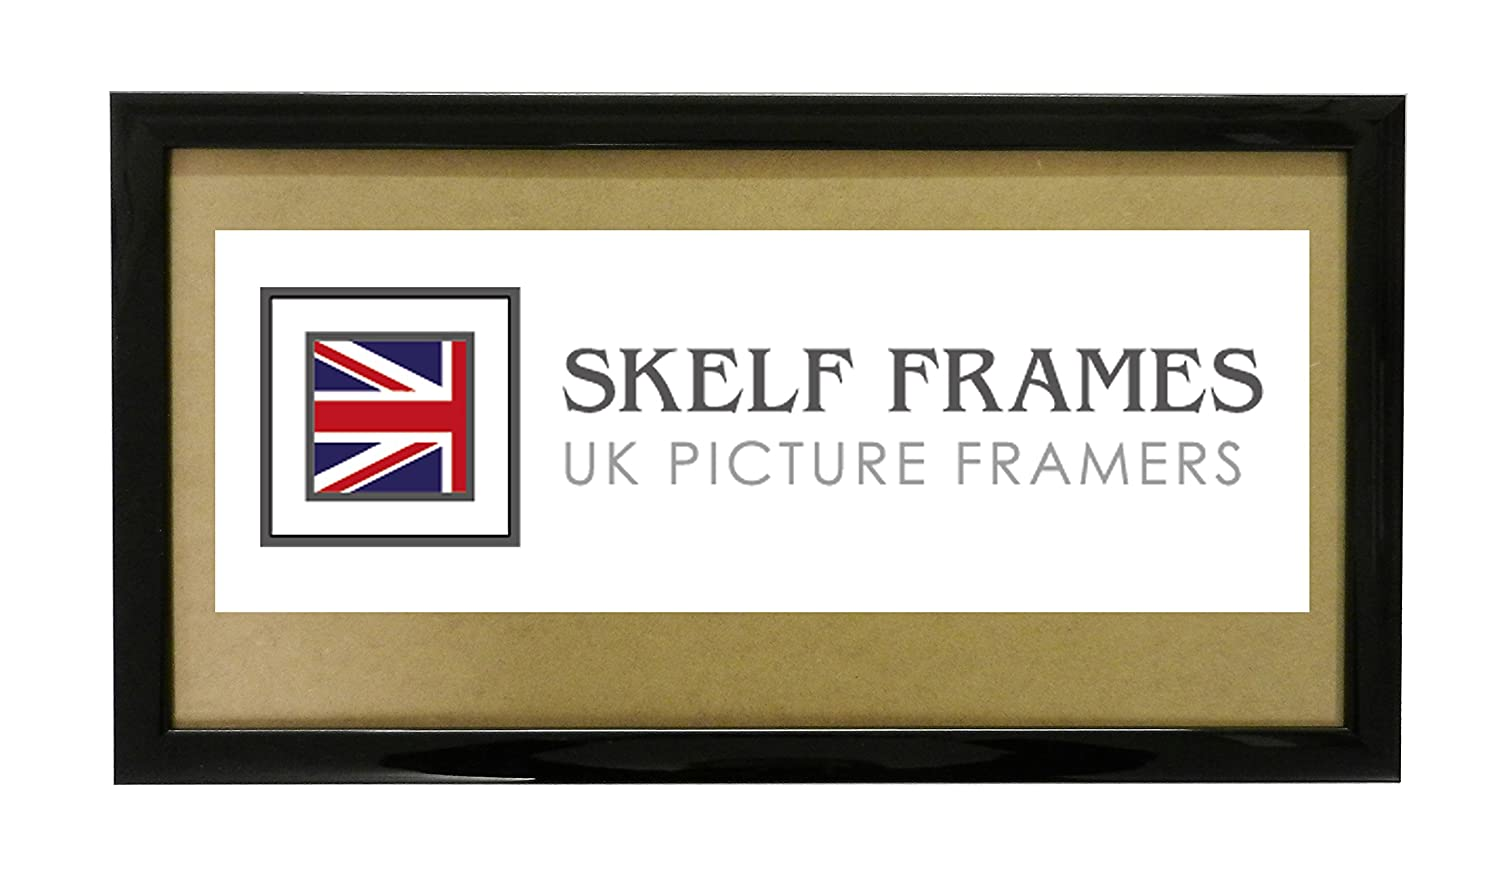 20x7 PANORAMIC WOOD PICTURE PHOTO POSTER FRAME (Shiny Black) SKELF FRAMES LTD